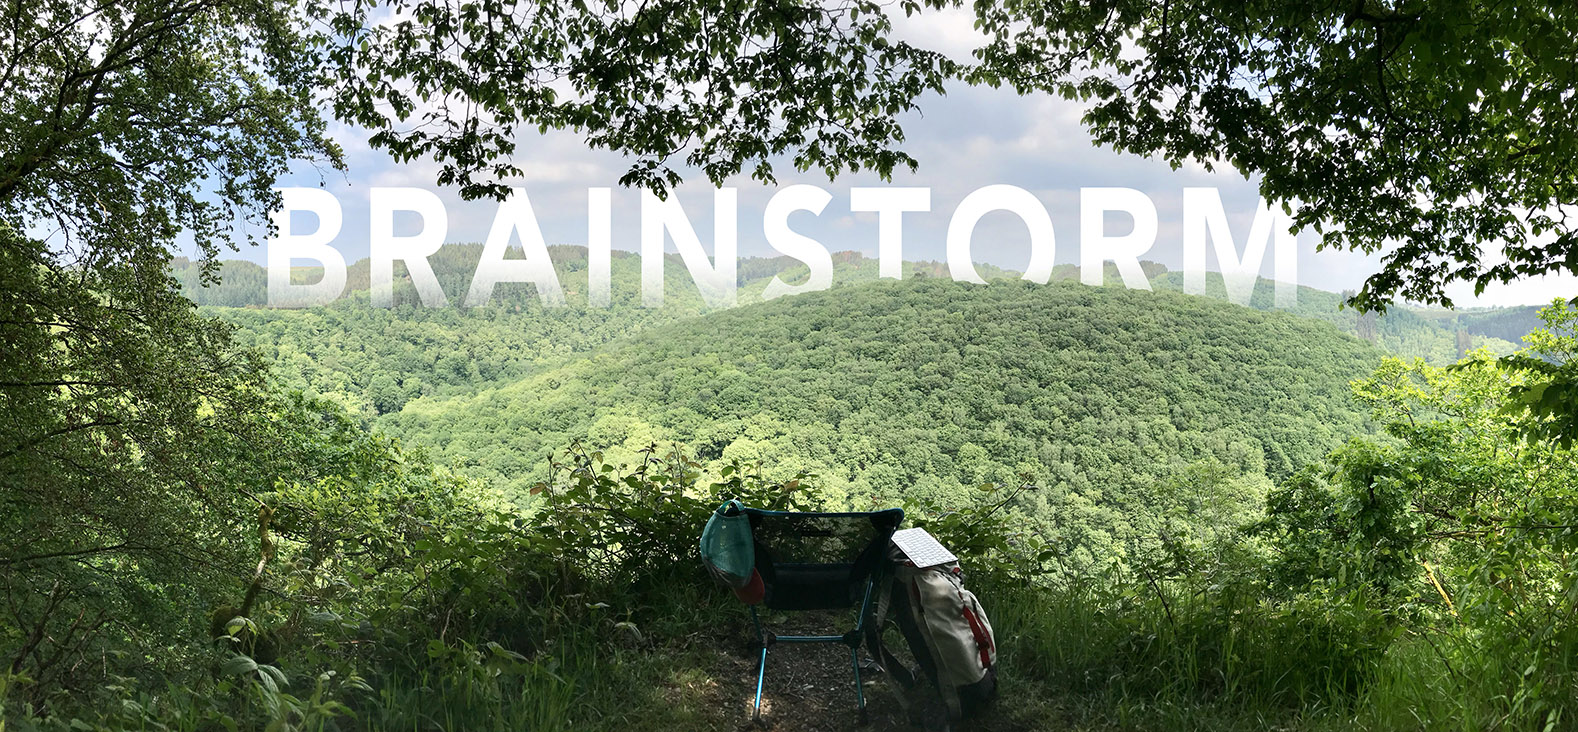 A hilly and foresty landscape into which the word BRAINSTORM is embedded